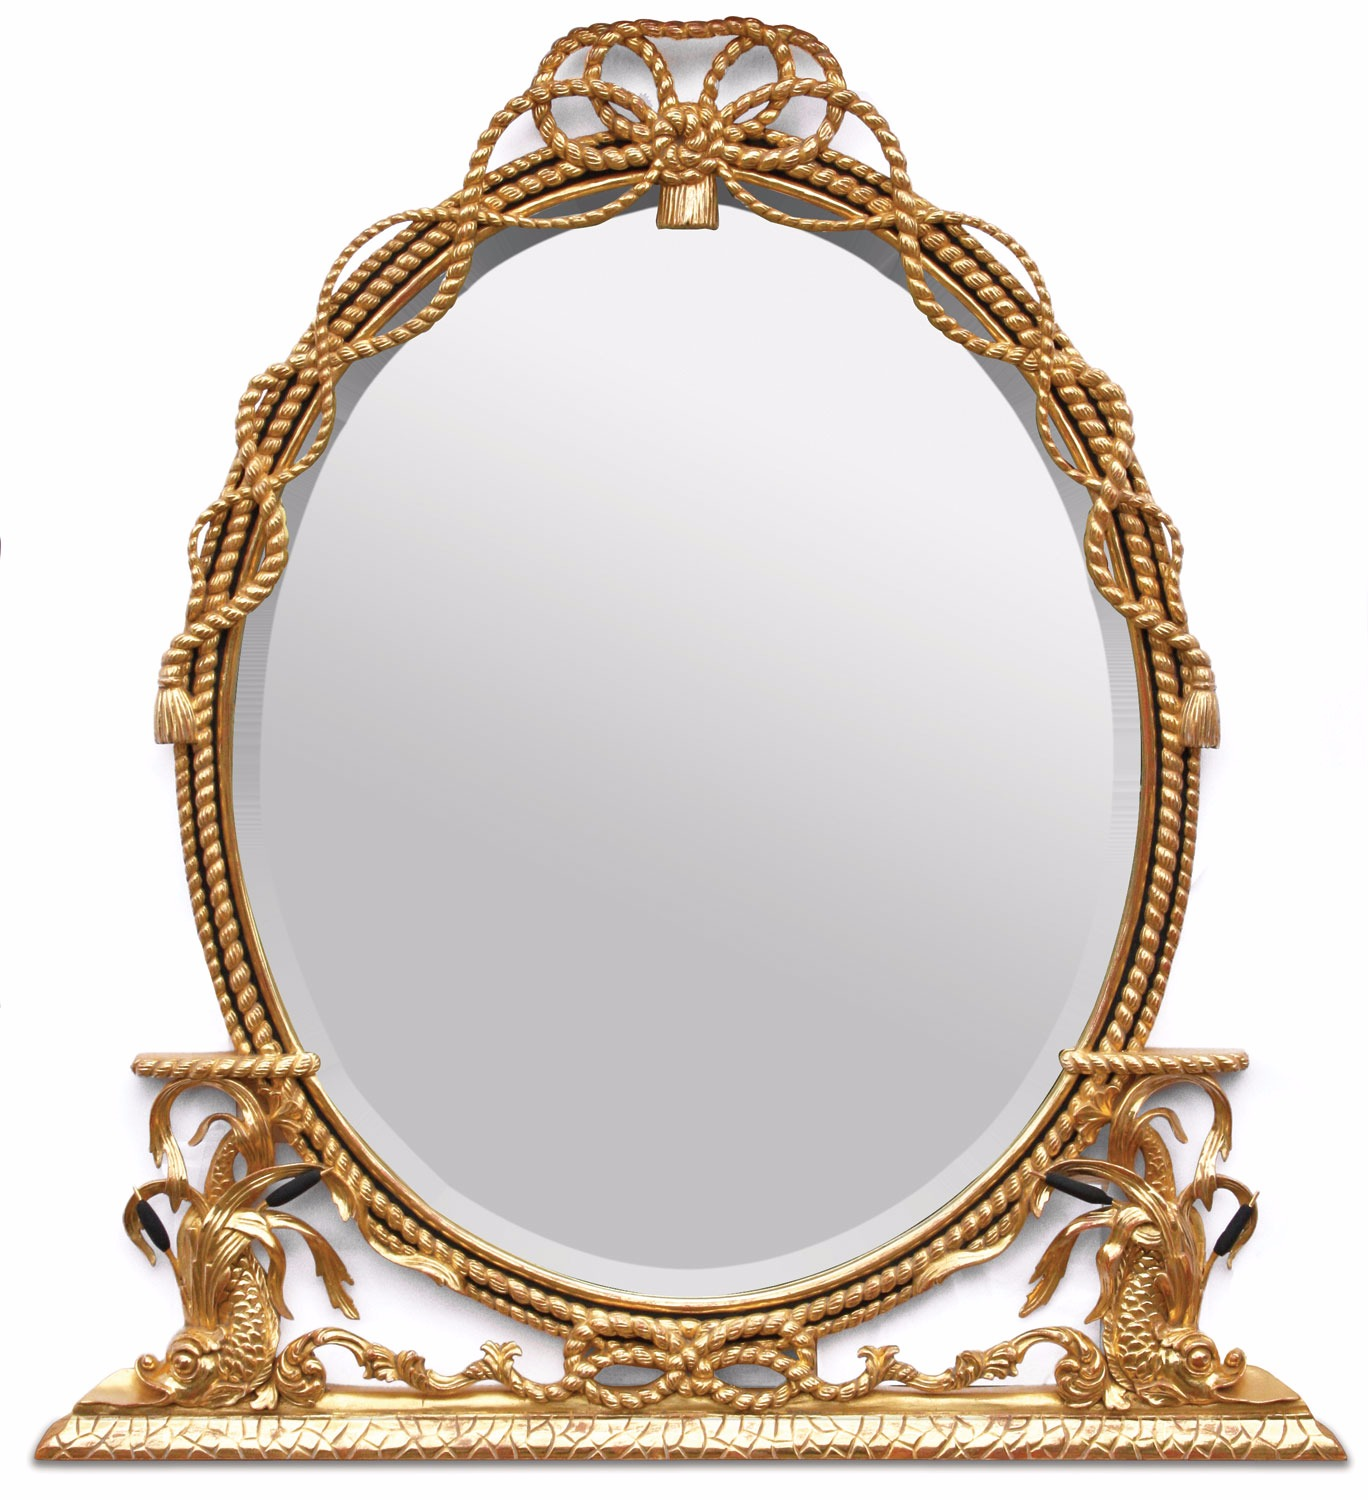 George III style water gilded mirror in Napoleonic finish